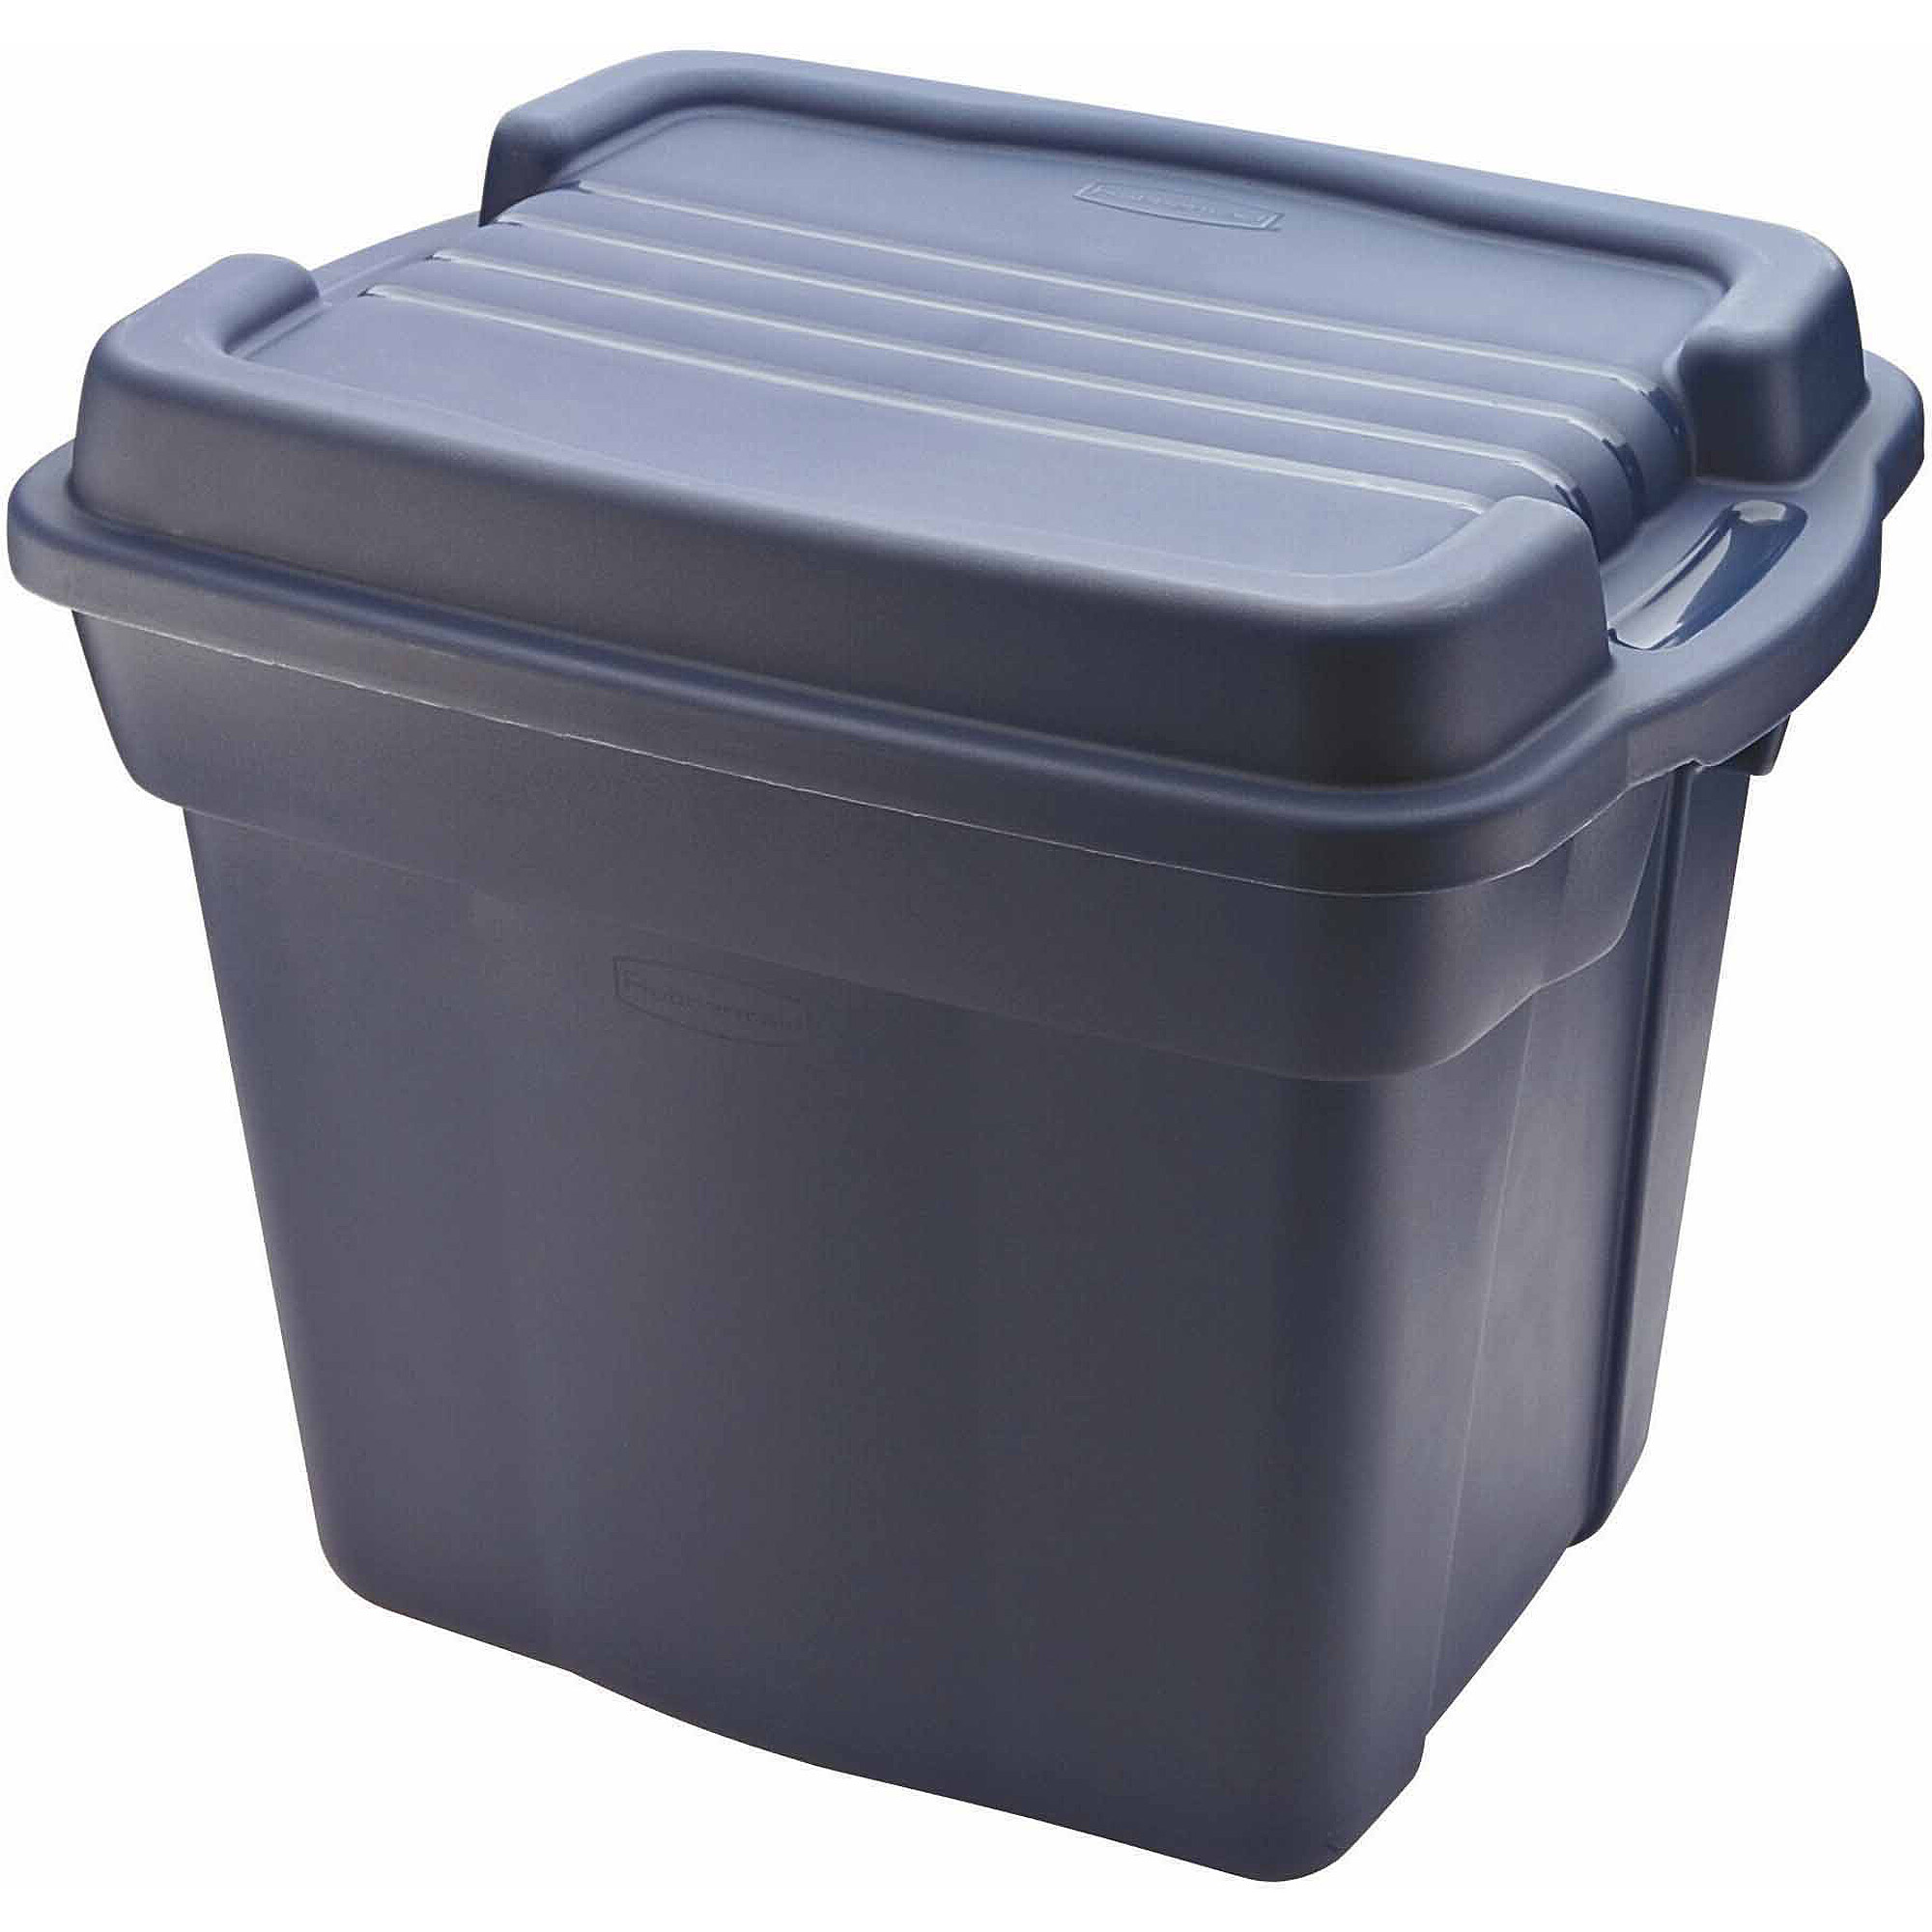 Rubbermaid Roughneck 24-Gallon Tote, Dark Indigo Metallic